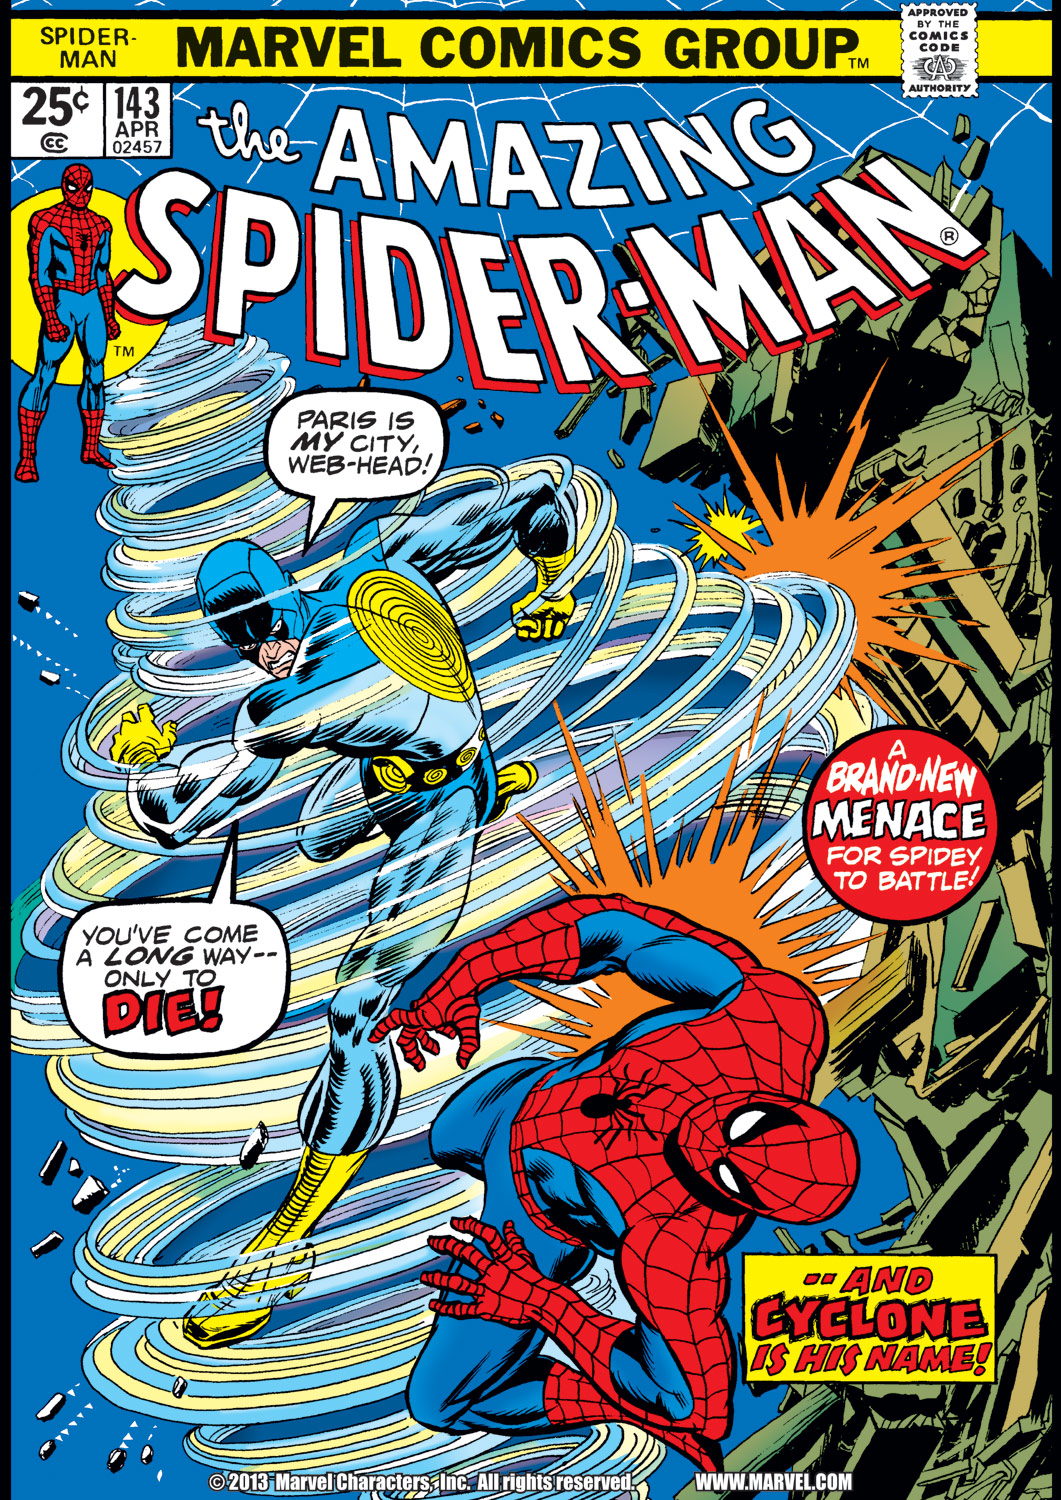 The Amazing Spider-Man (1963) #143